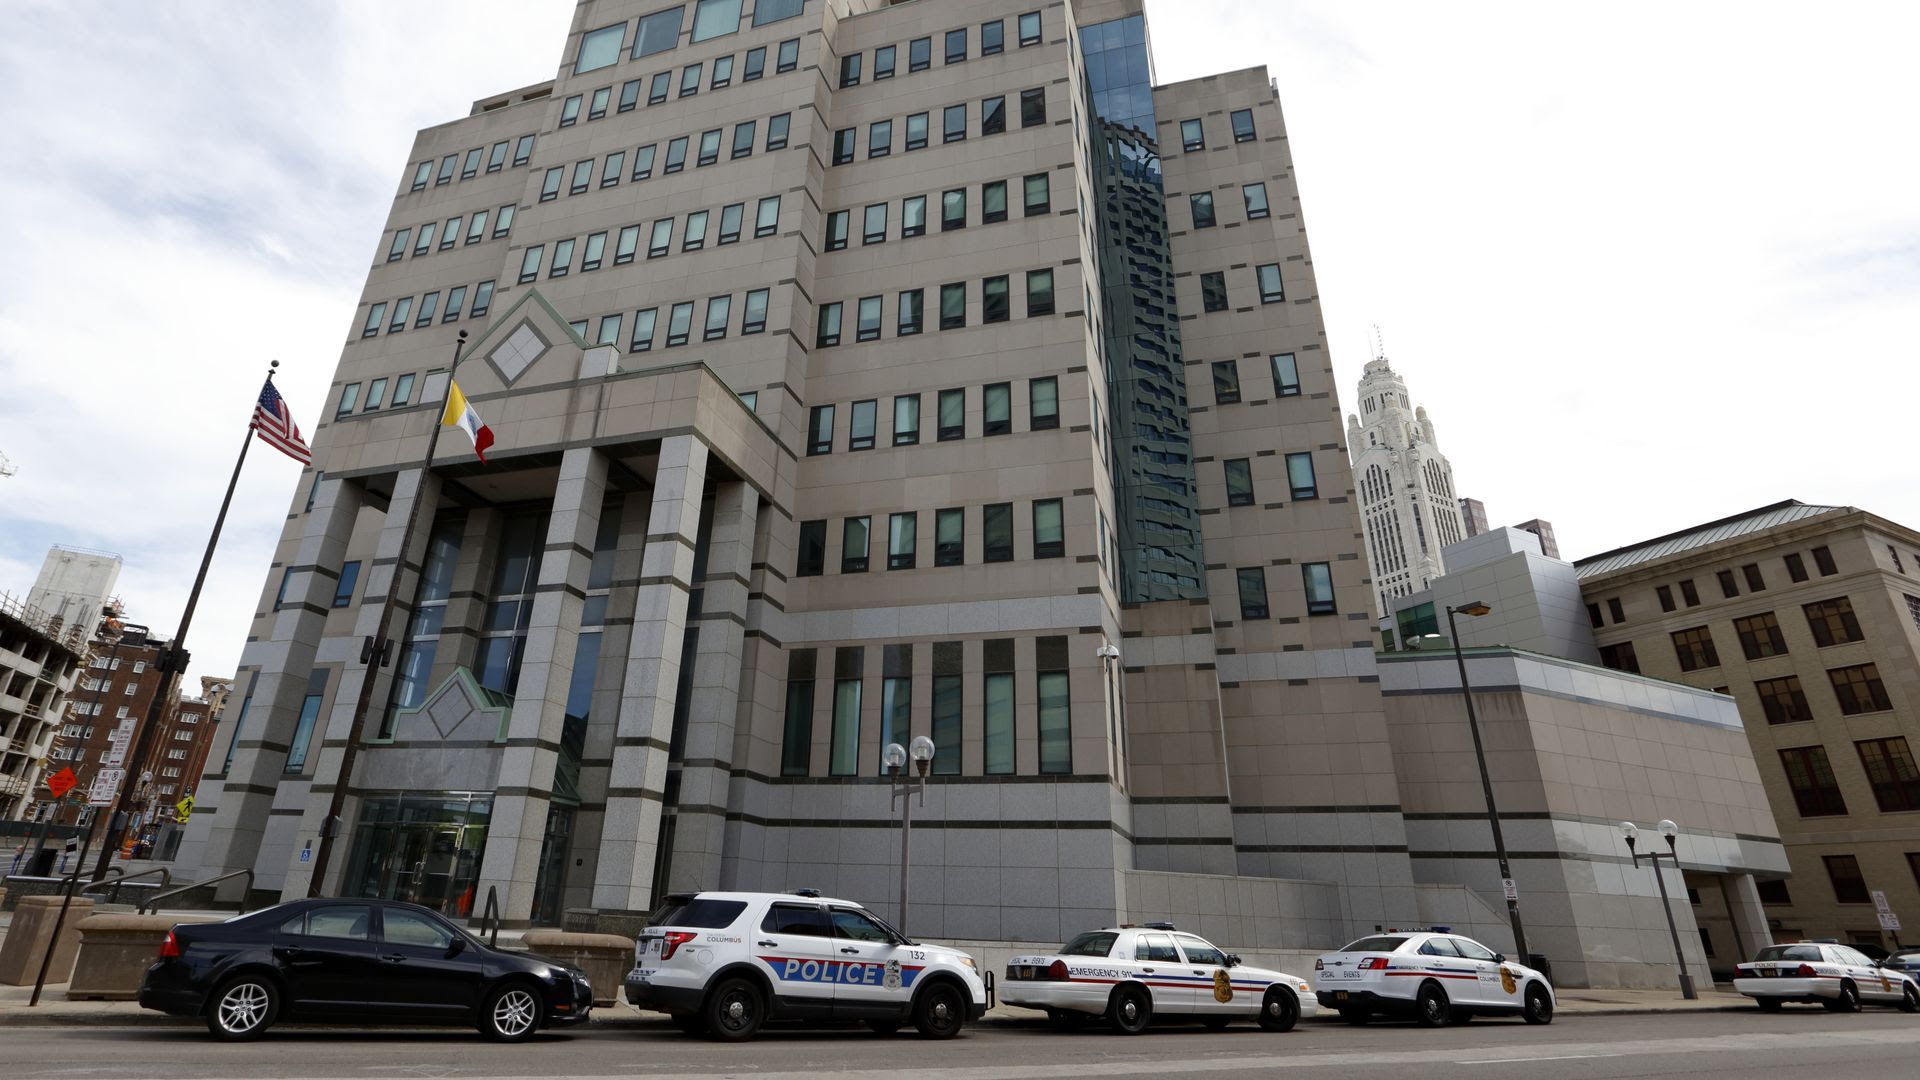 The exterior of the Columbus Division of Police headquarters with police cars lined up outside.